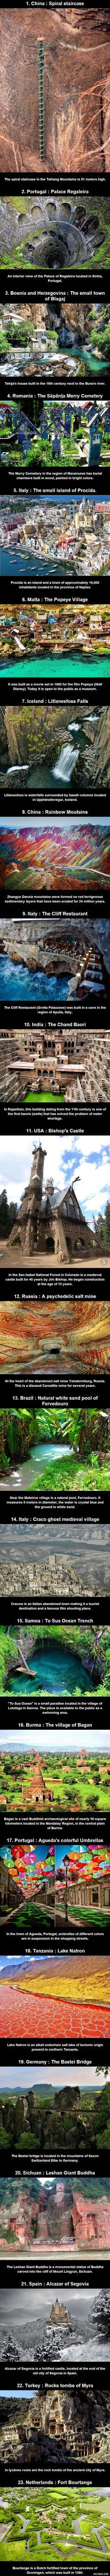 23 places to visit before dying. Take me to all these places now.